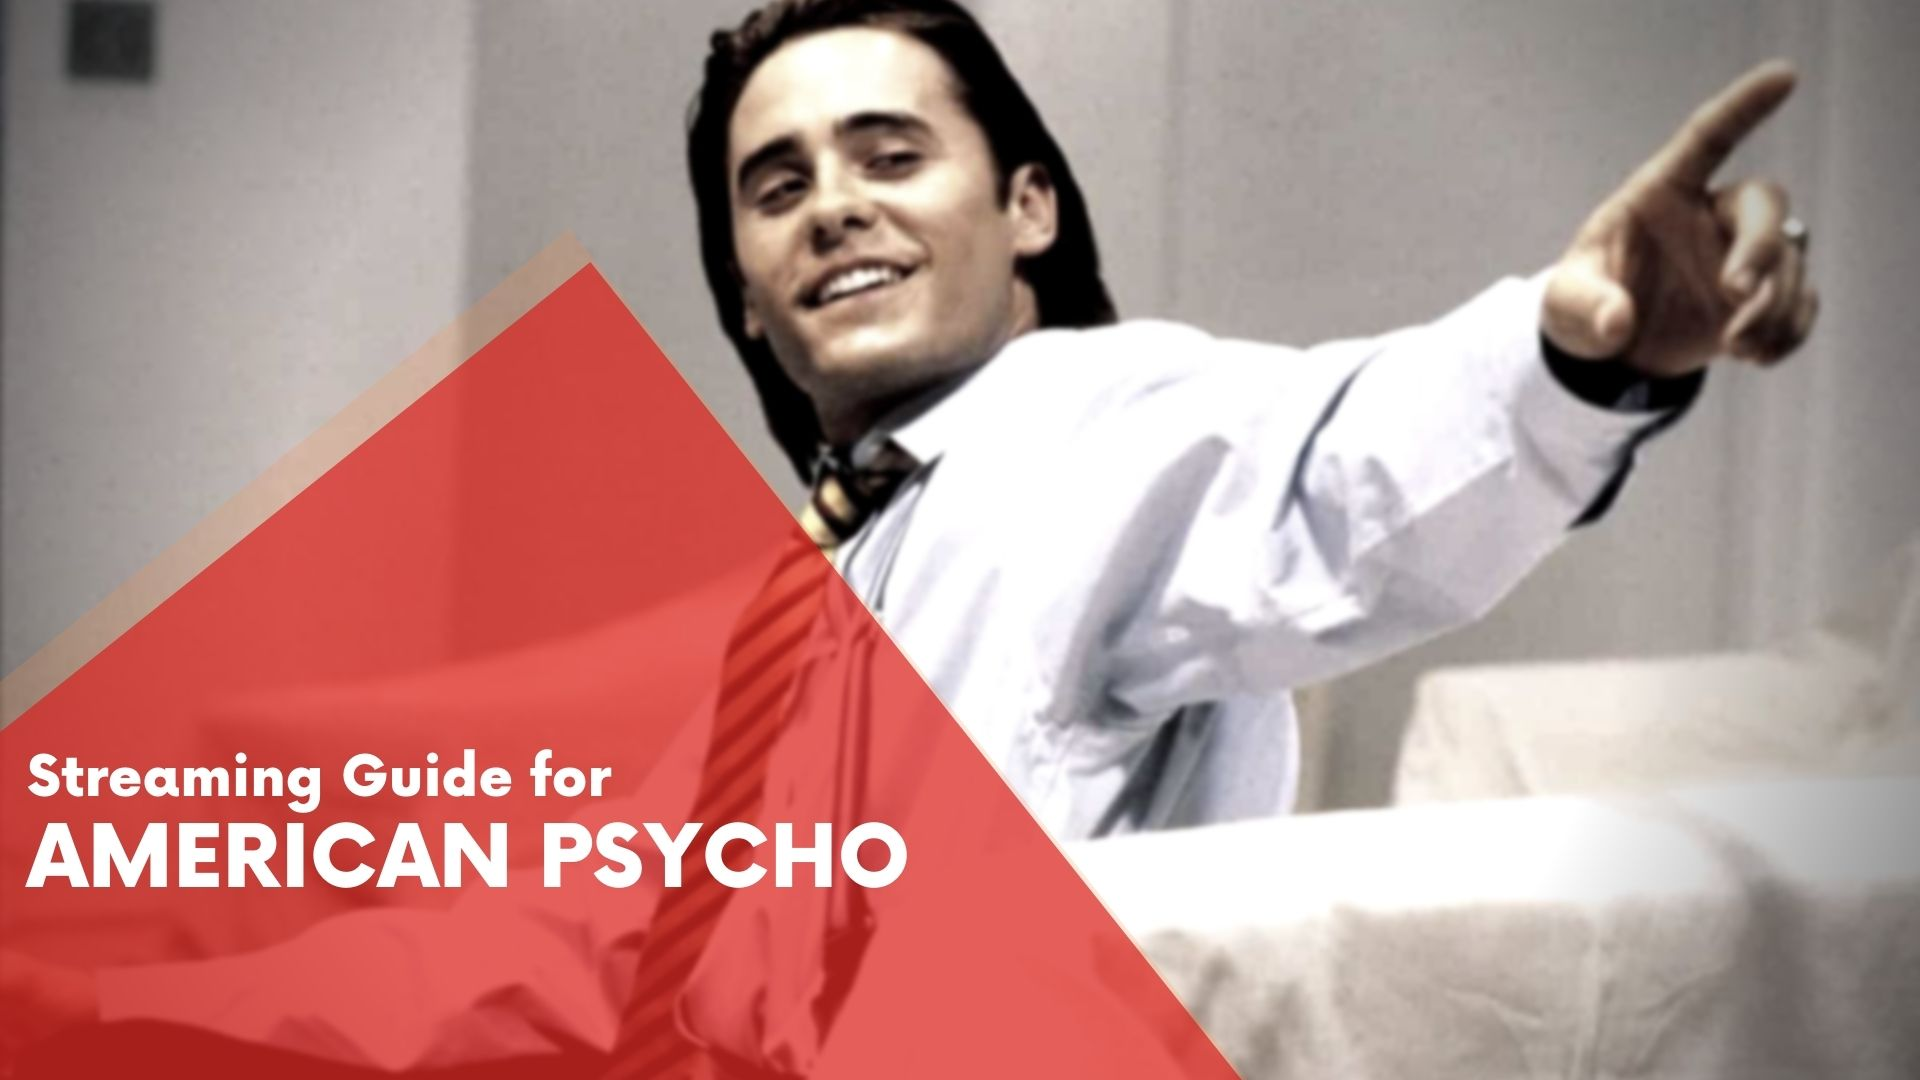 Answering if American Psycho is available on Hulu